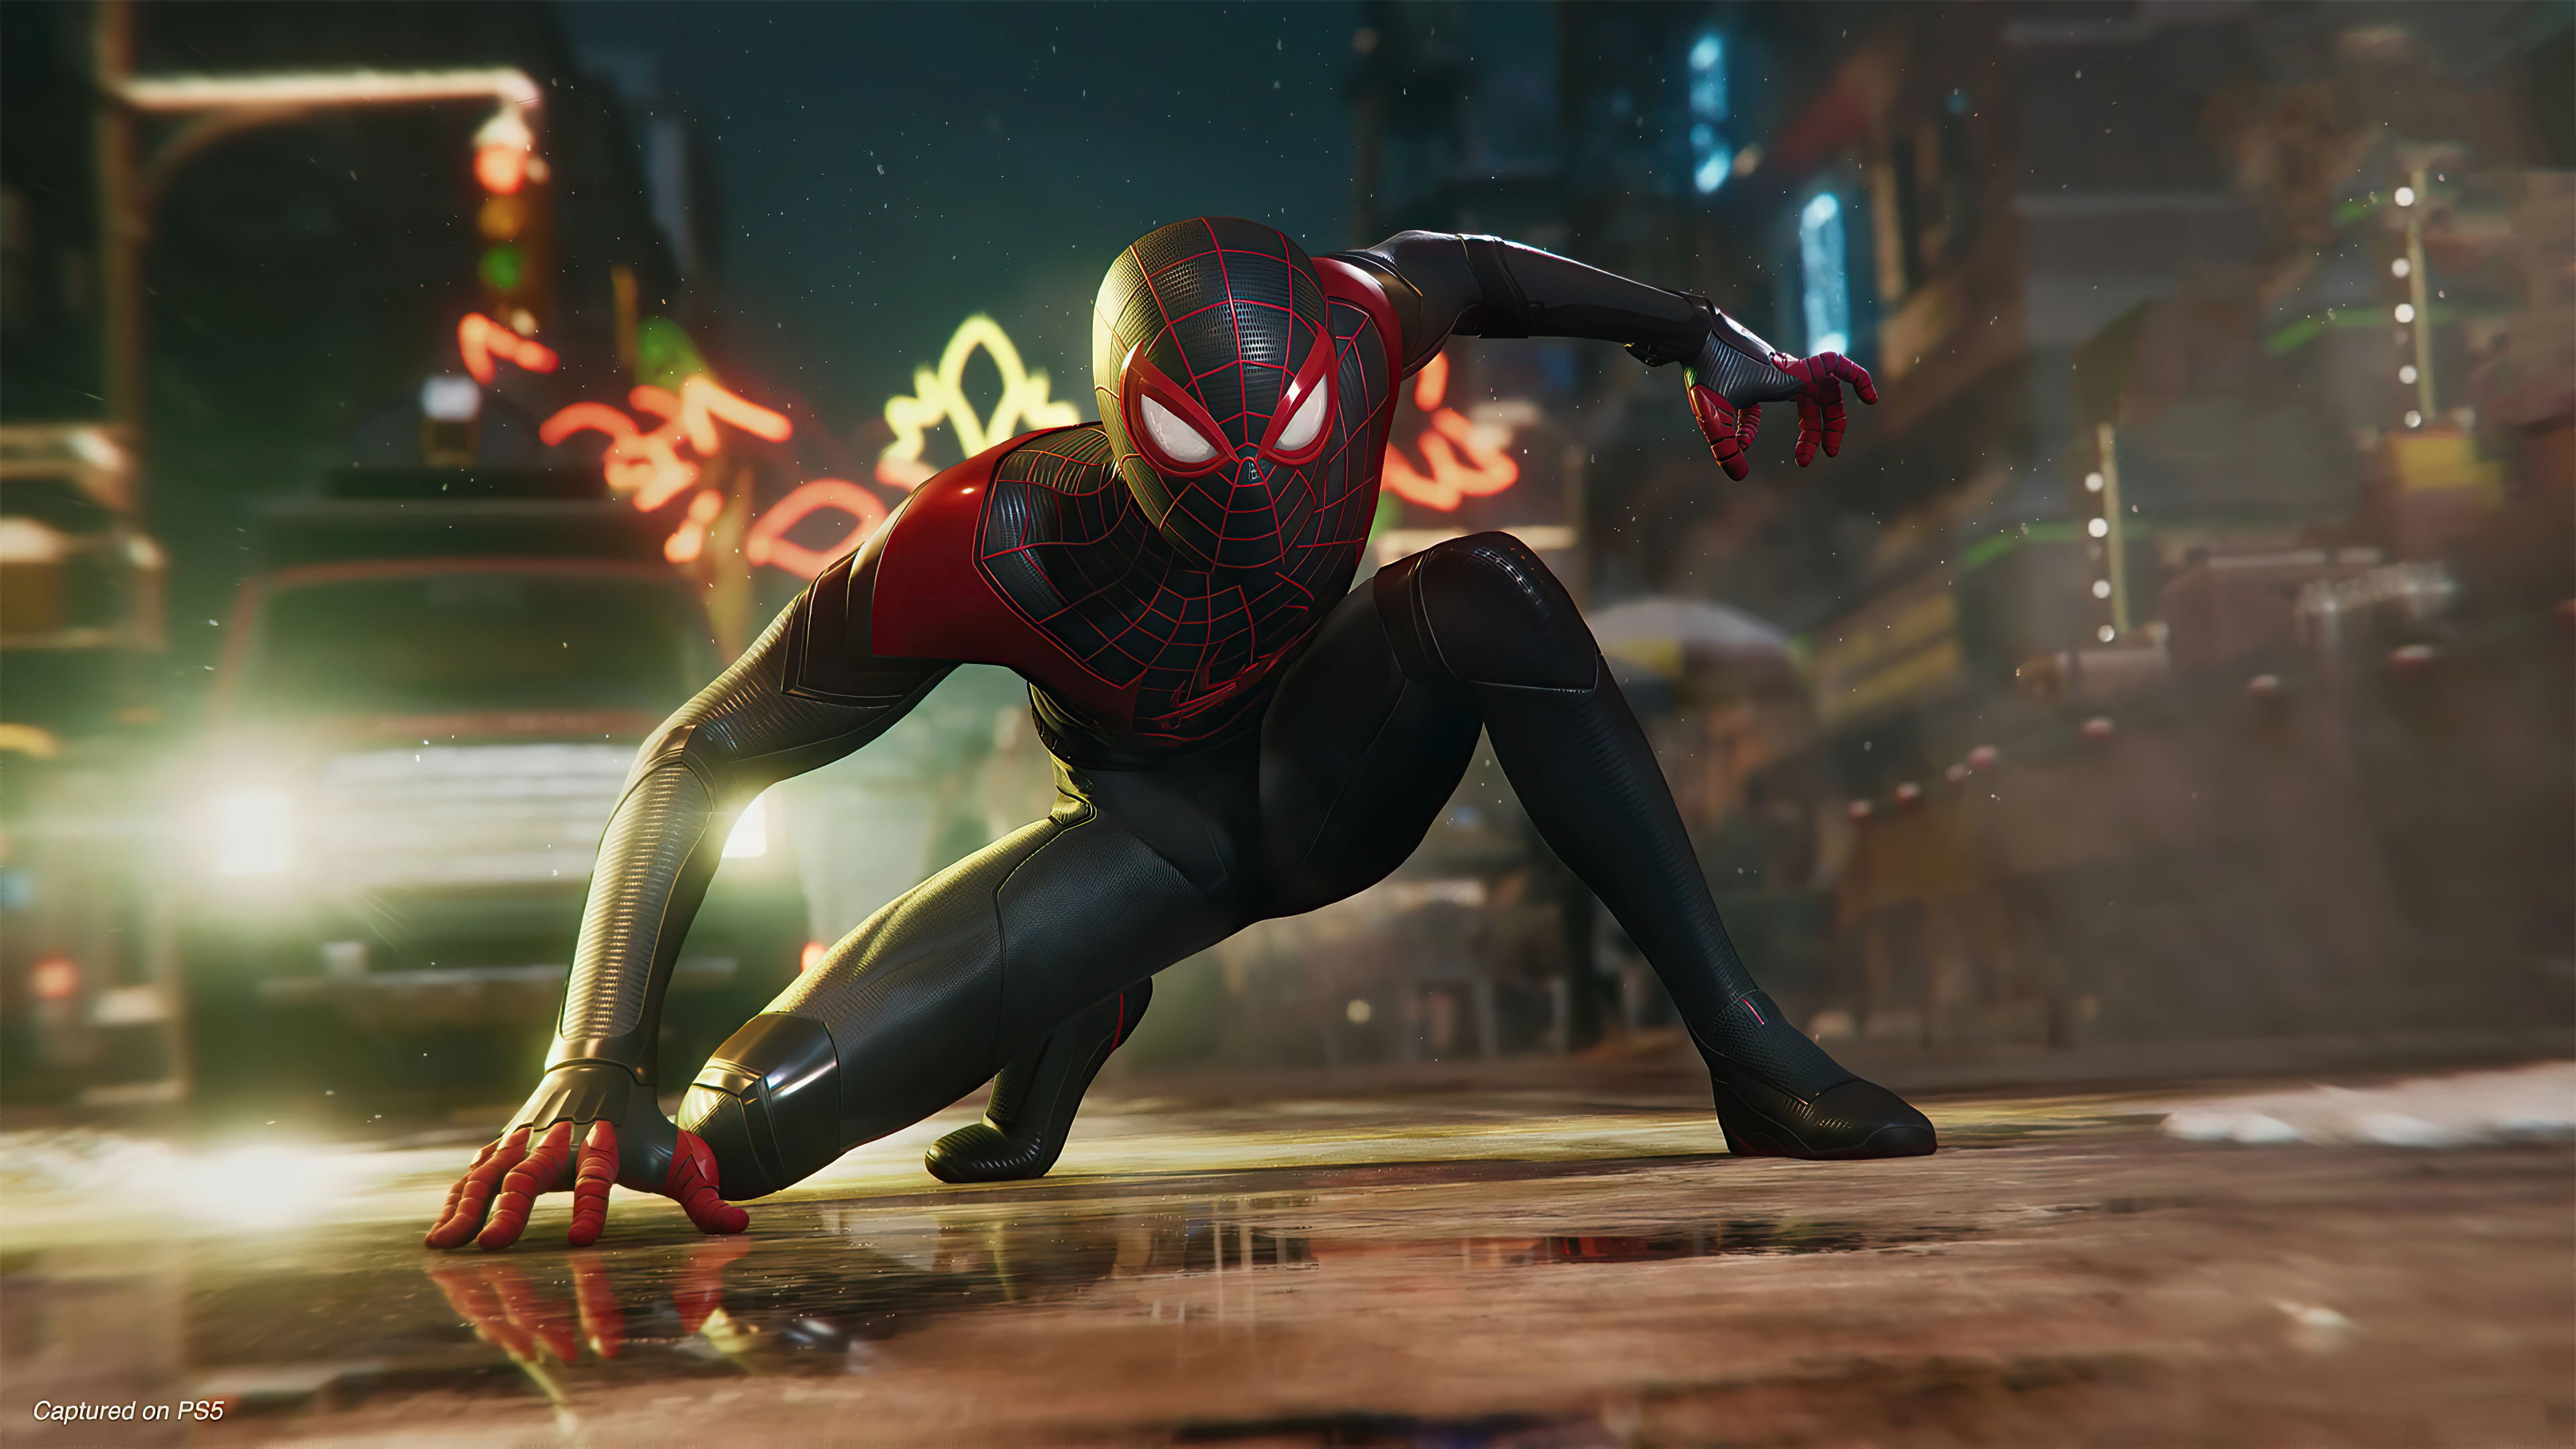 Wallpaper Miles Morales as Spiderman in the city